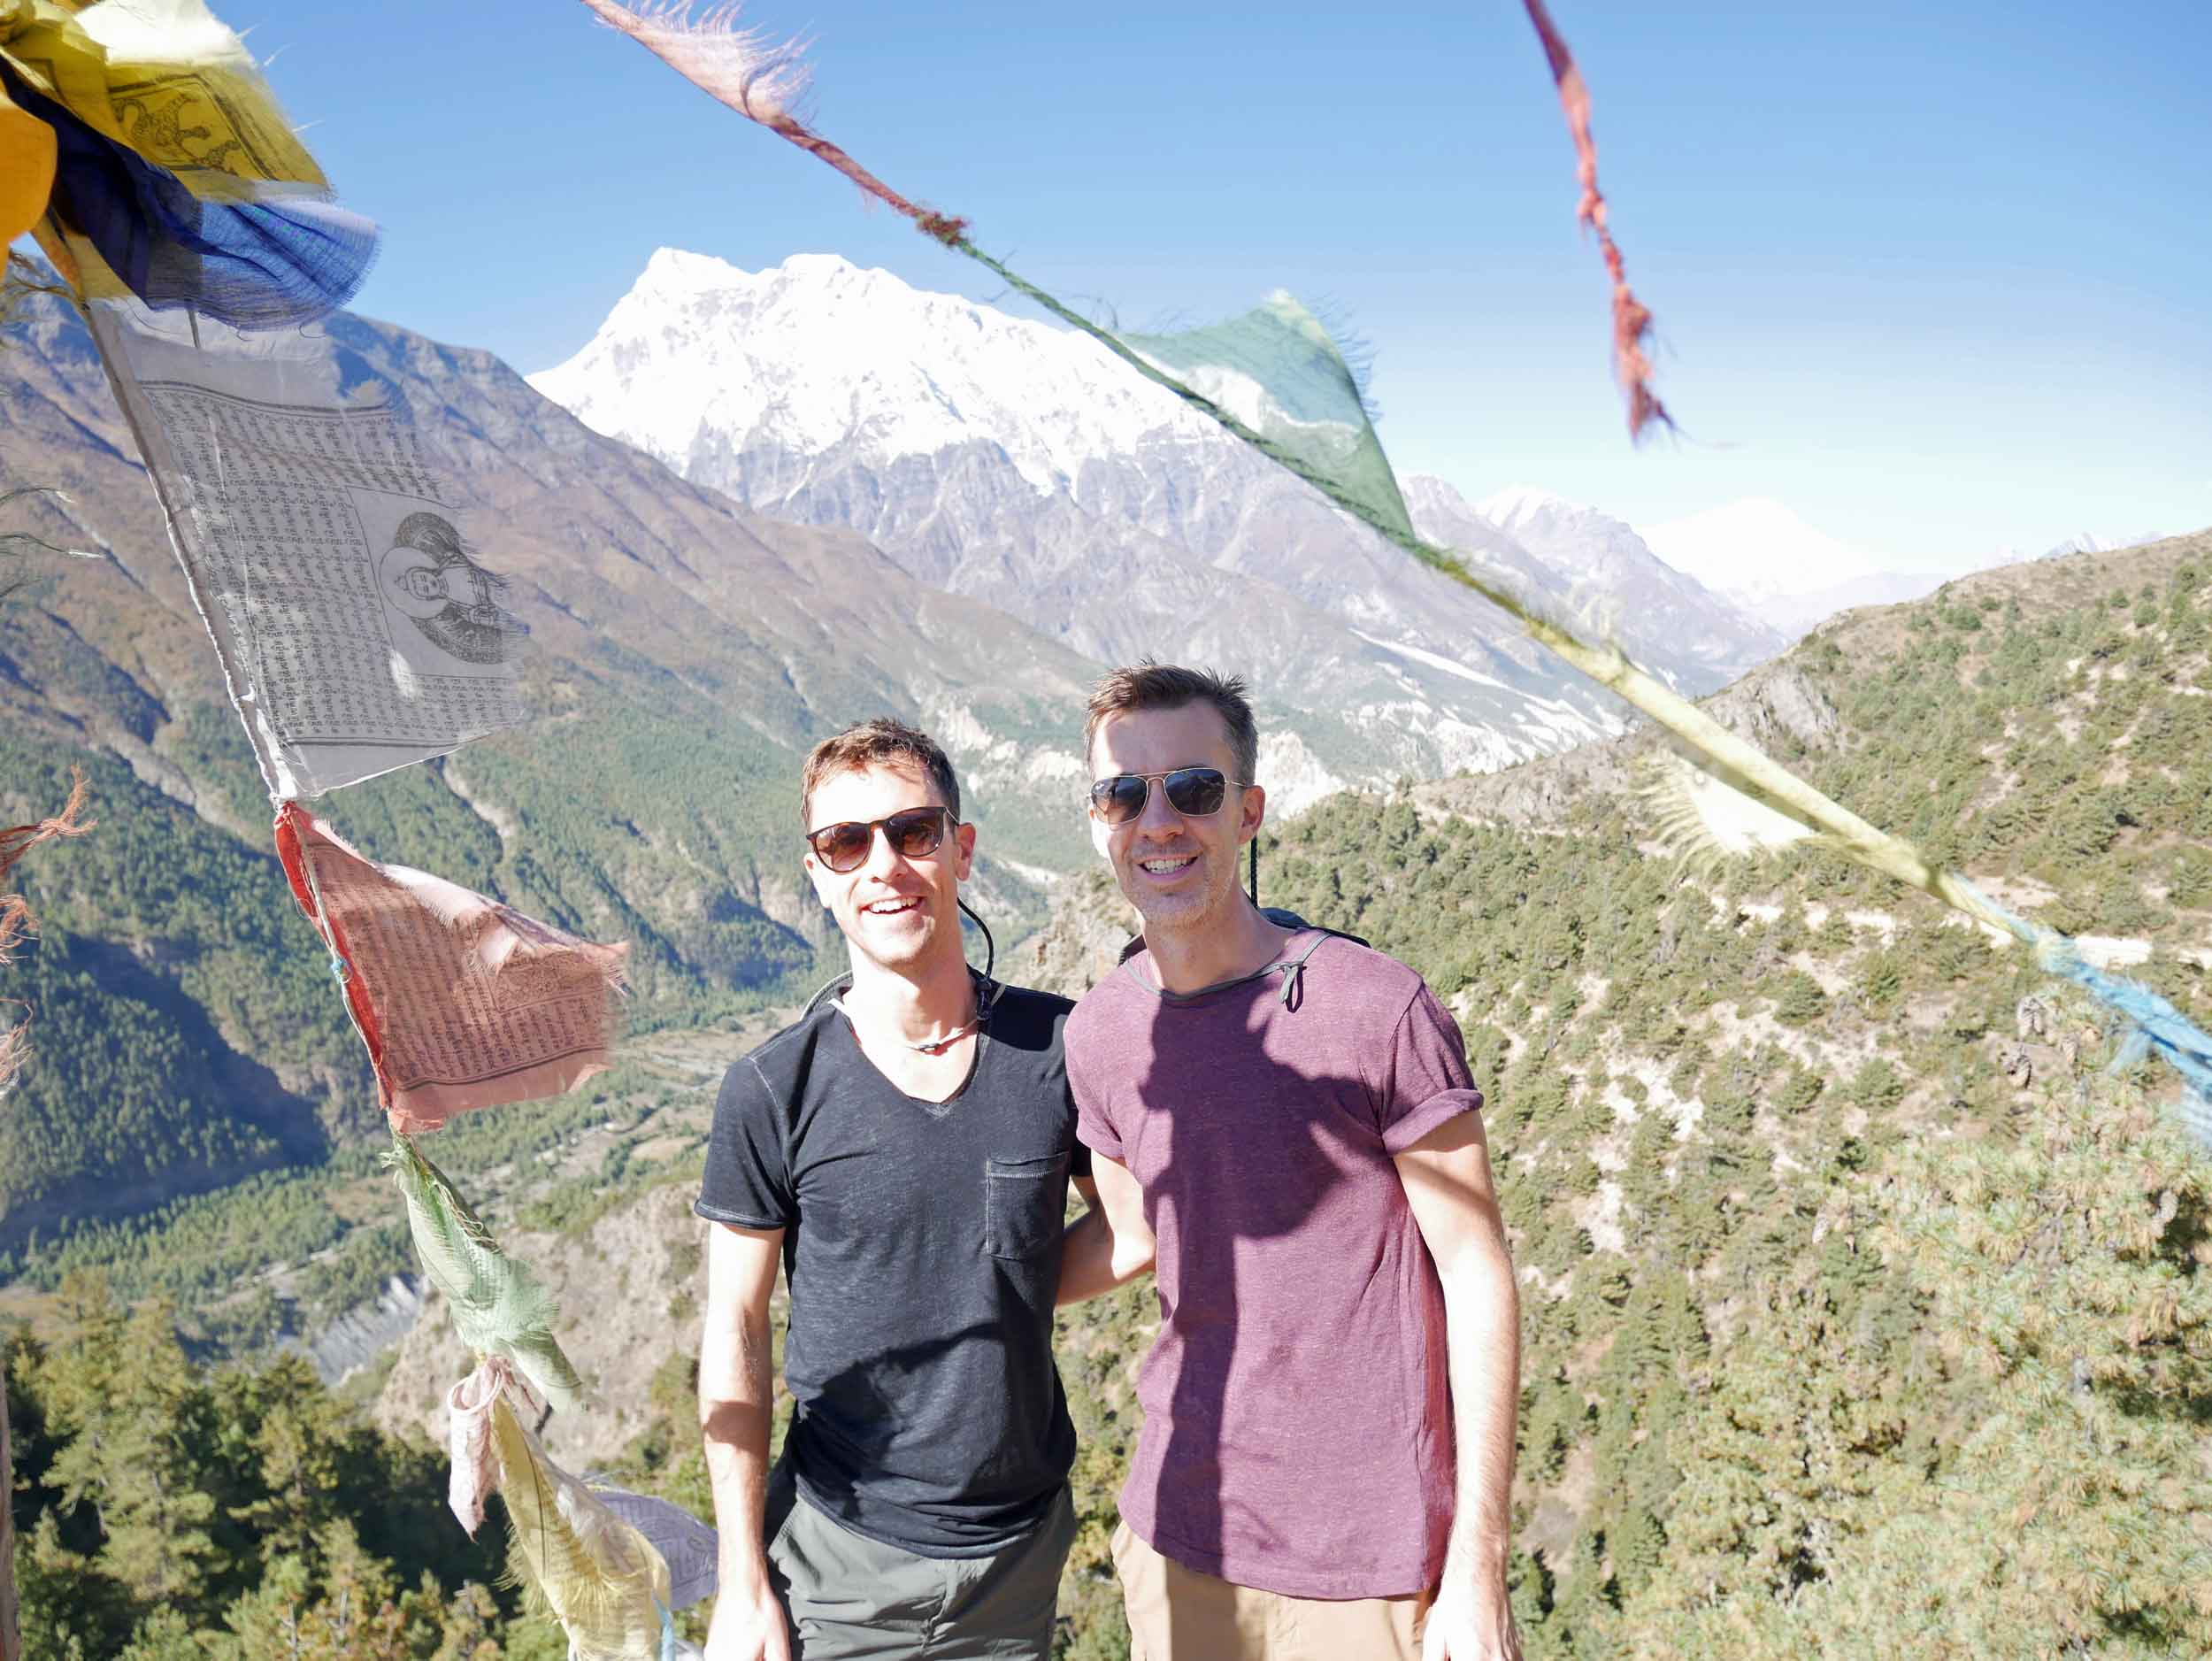 Tibetan Buddhist prayer flags adorn the mountainsides and holy sites throughout as well.